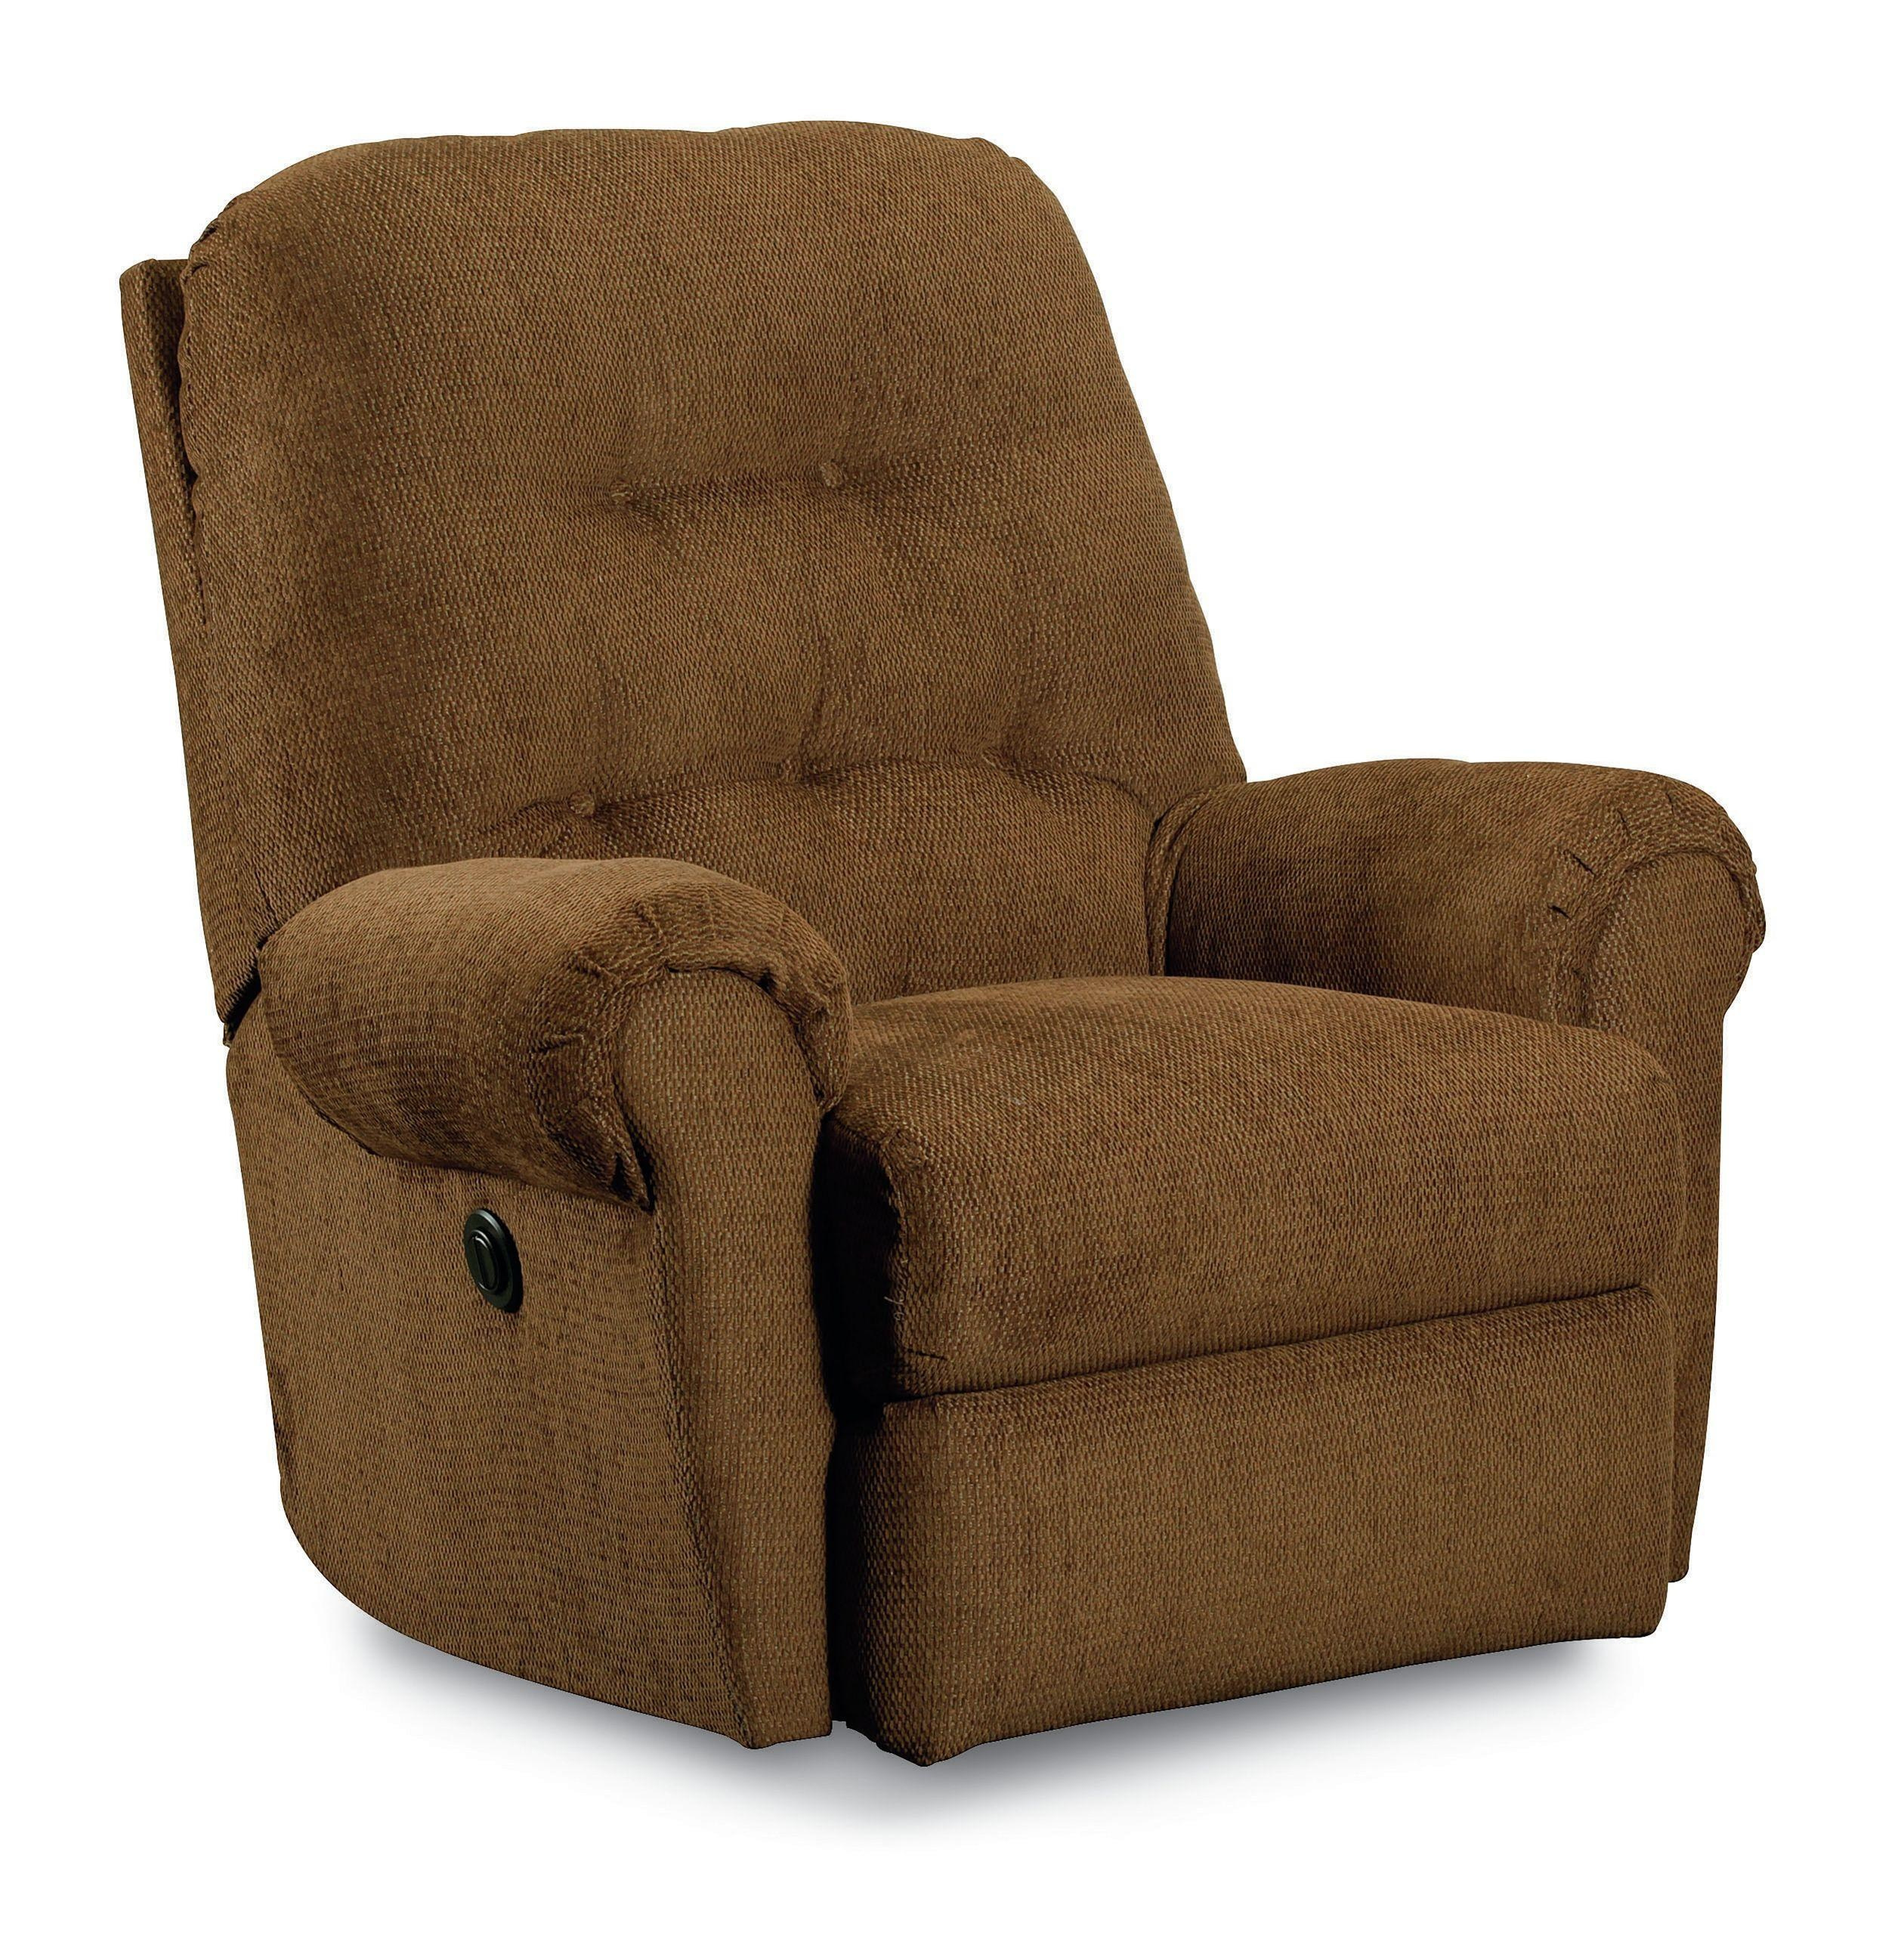 Lane Wallsaver - Lane Jitterbug Wallsaver Recliner | Westrich